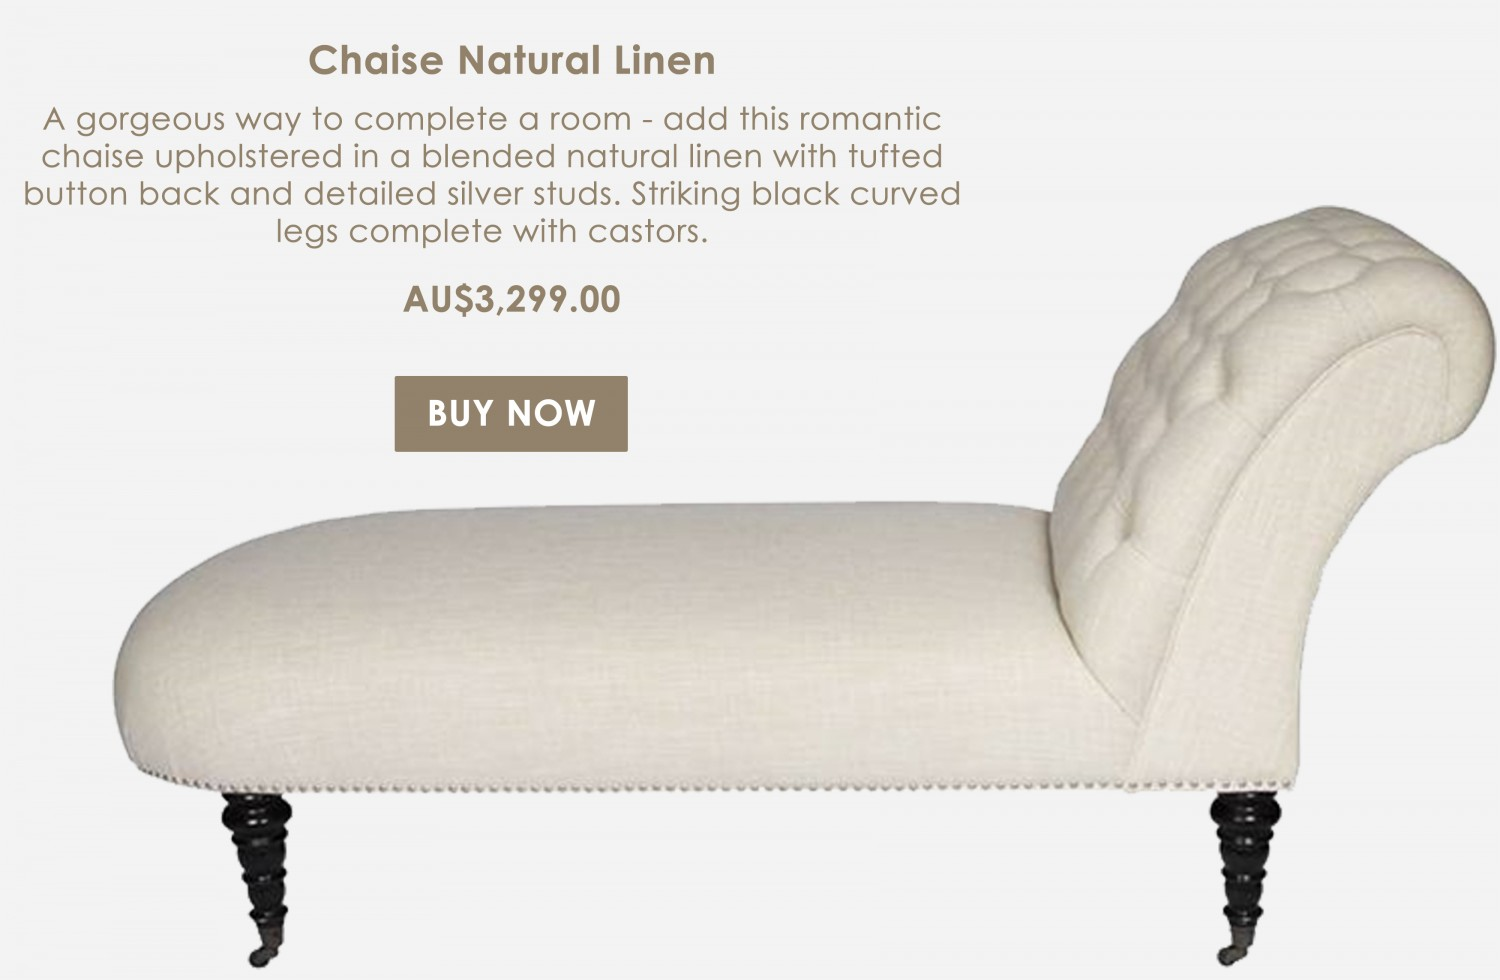 chaise-natural